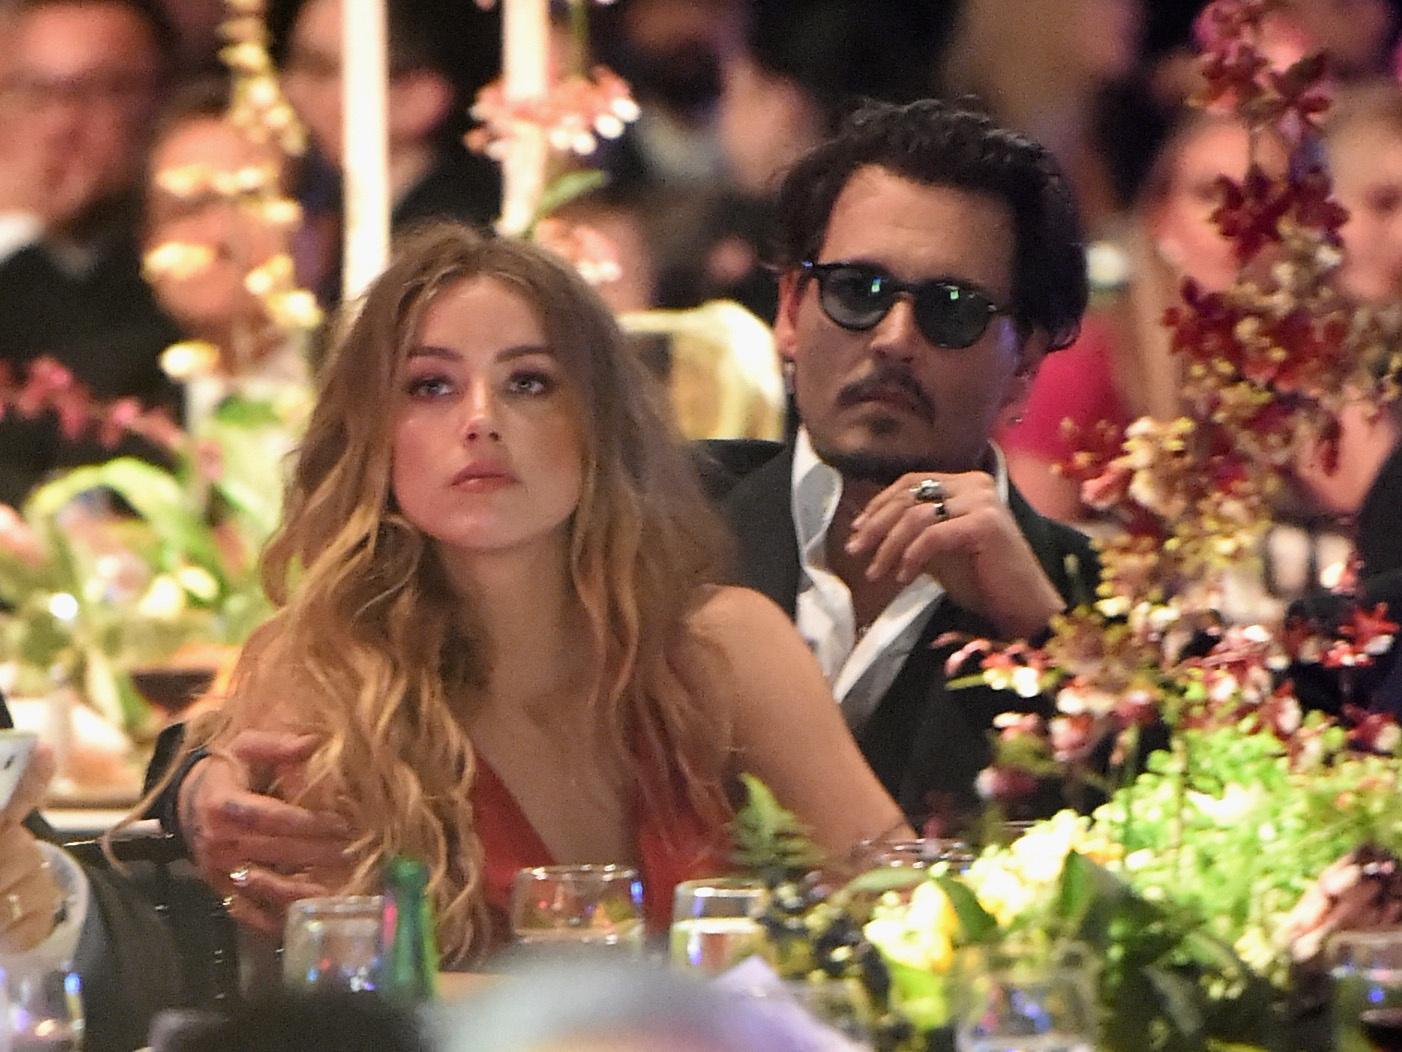 Actors Amber Heard and Johnny Depp attend The Art of Elysium 2016 HEAVEN Gala presented by Vivienne Westwood and Andreas Kronthaler at 3LABS on January 9, 2016 in Culver City, California. (Photo by Jason Merritt/Getty Images for Art of Elysium)